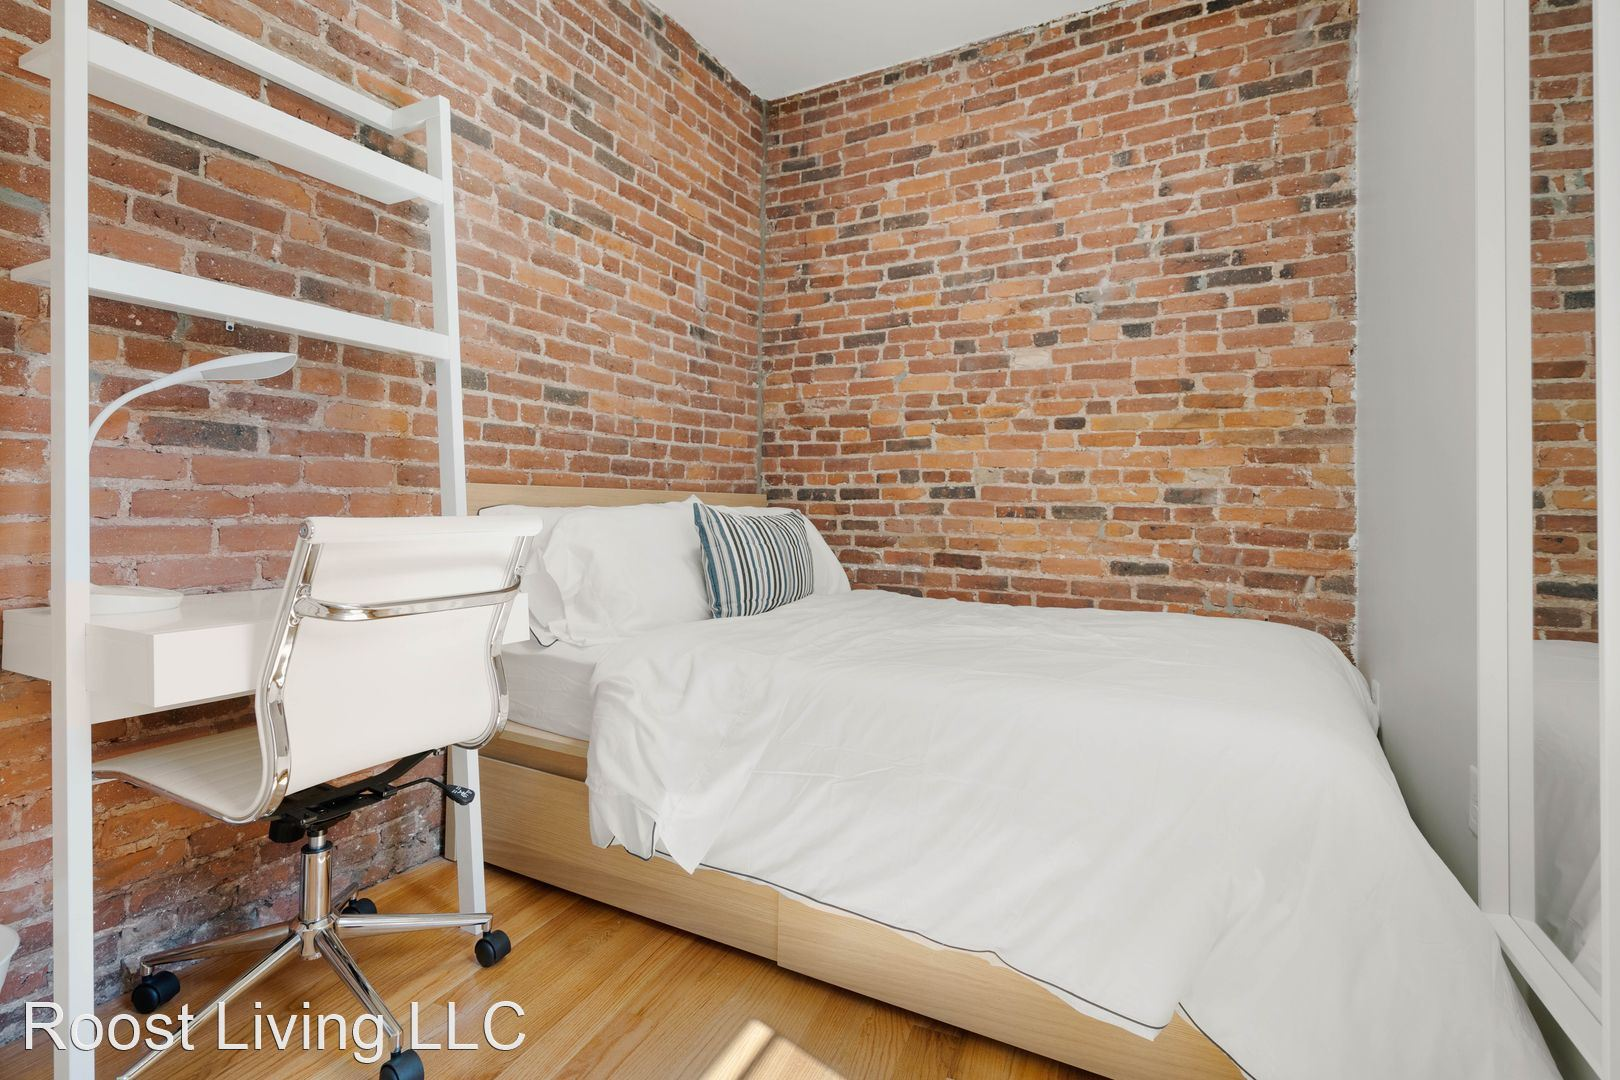 15 Snow Hill St Coliving for rent